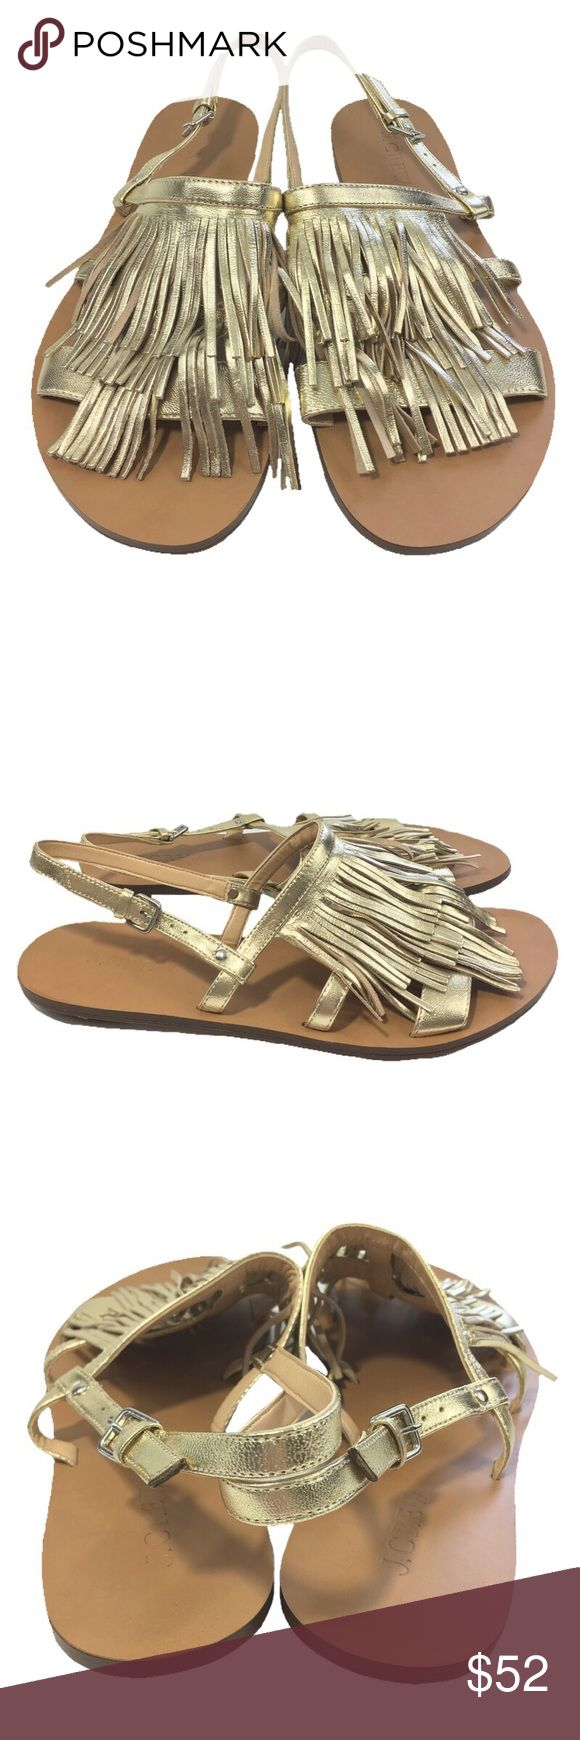 J. CREW FINGE SLINGBACK SANDAL_#123_59 J. CREW FRINGE SLINGBACK SANDALS. PALE GOLD. SILVER HARDWARE. MADE IN MOROCCO. FABRIC: ITALIAN LEATHER. CONDITION: NIBWTS* J. Crew Shoes Sandals